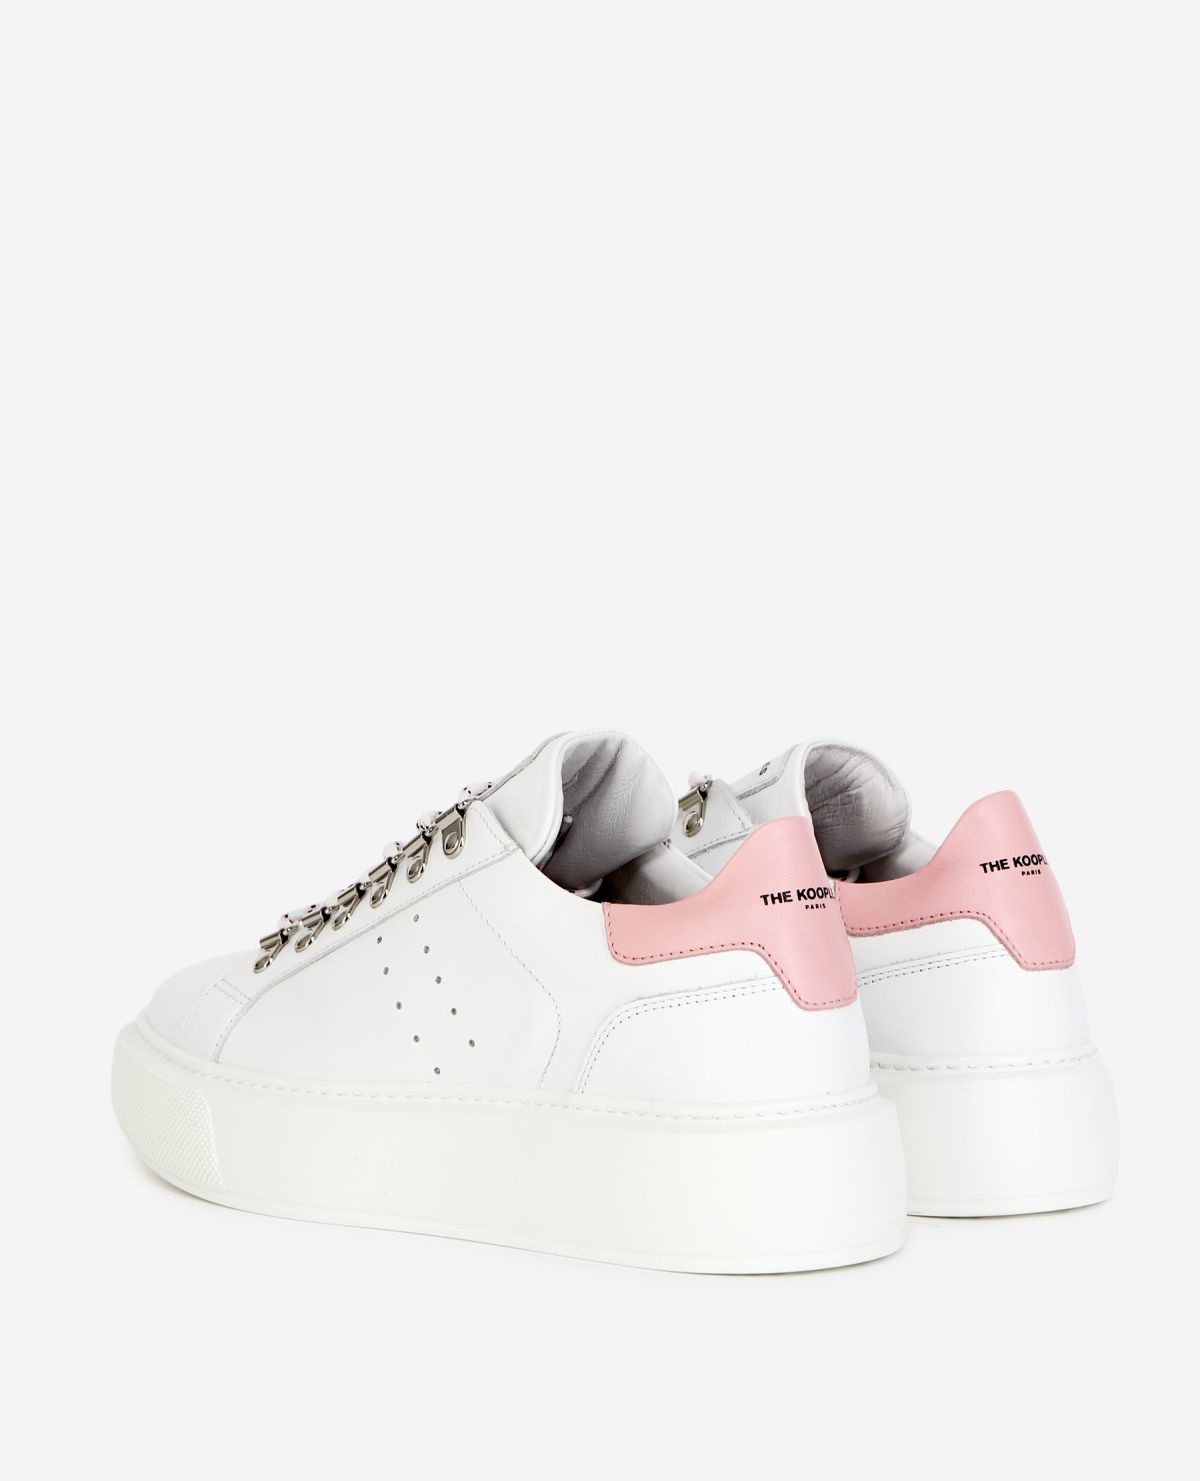 THE KOOPLES  baskets cuir blanches-3